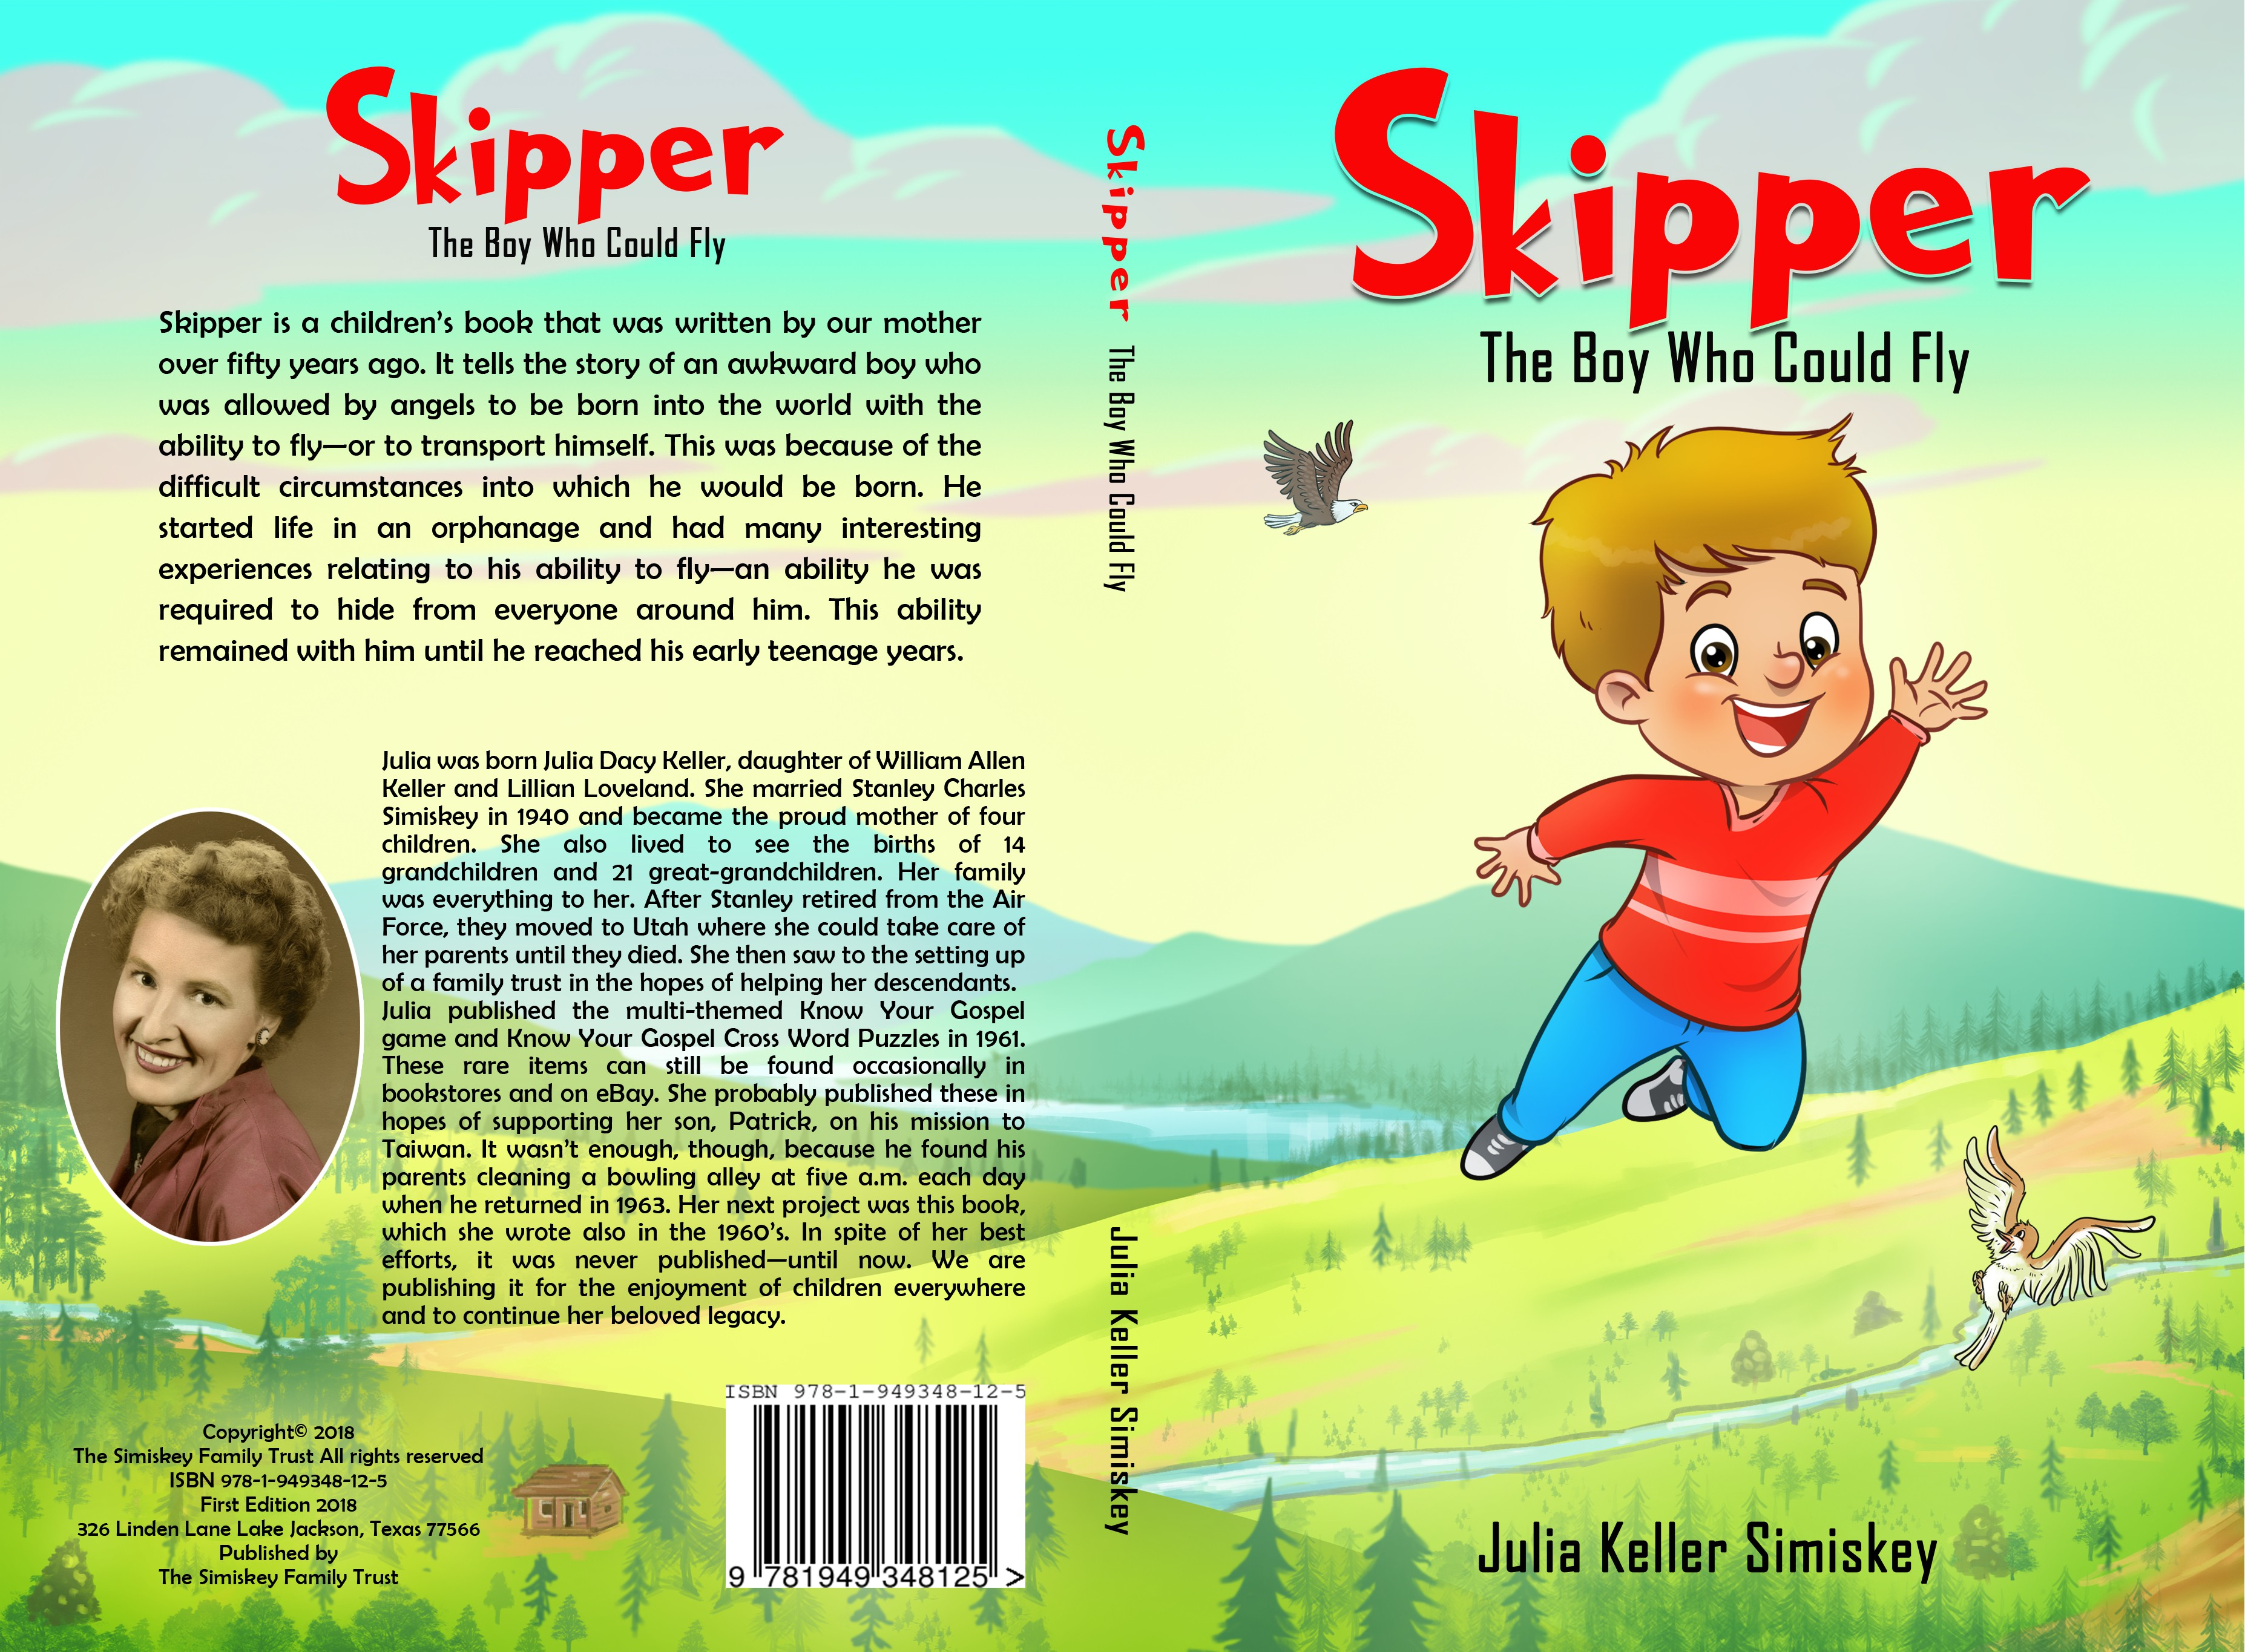 Create a whimsical children's book cover